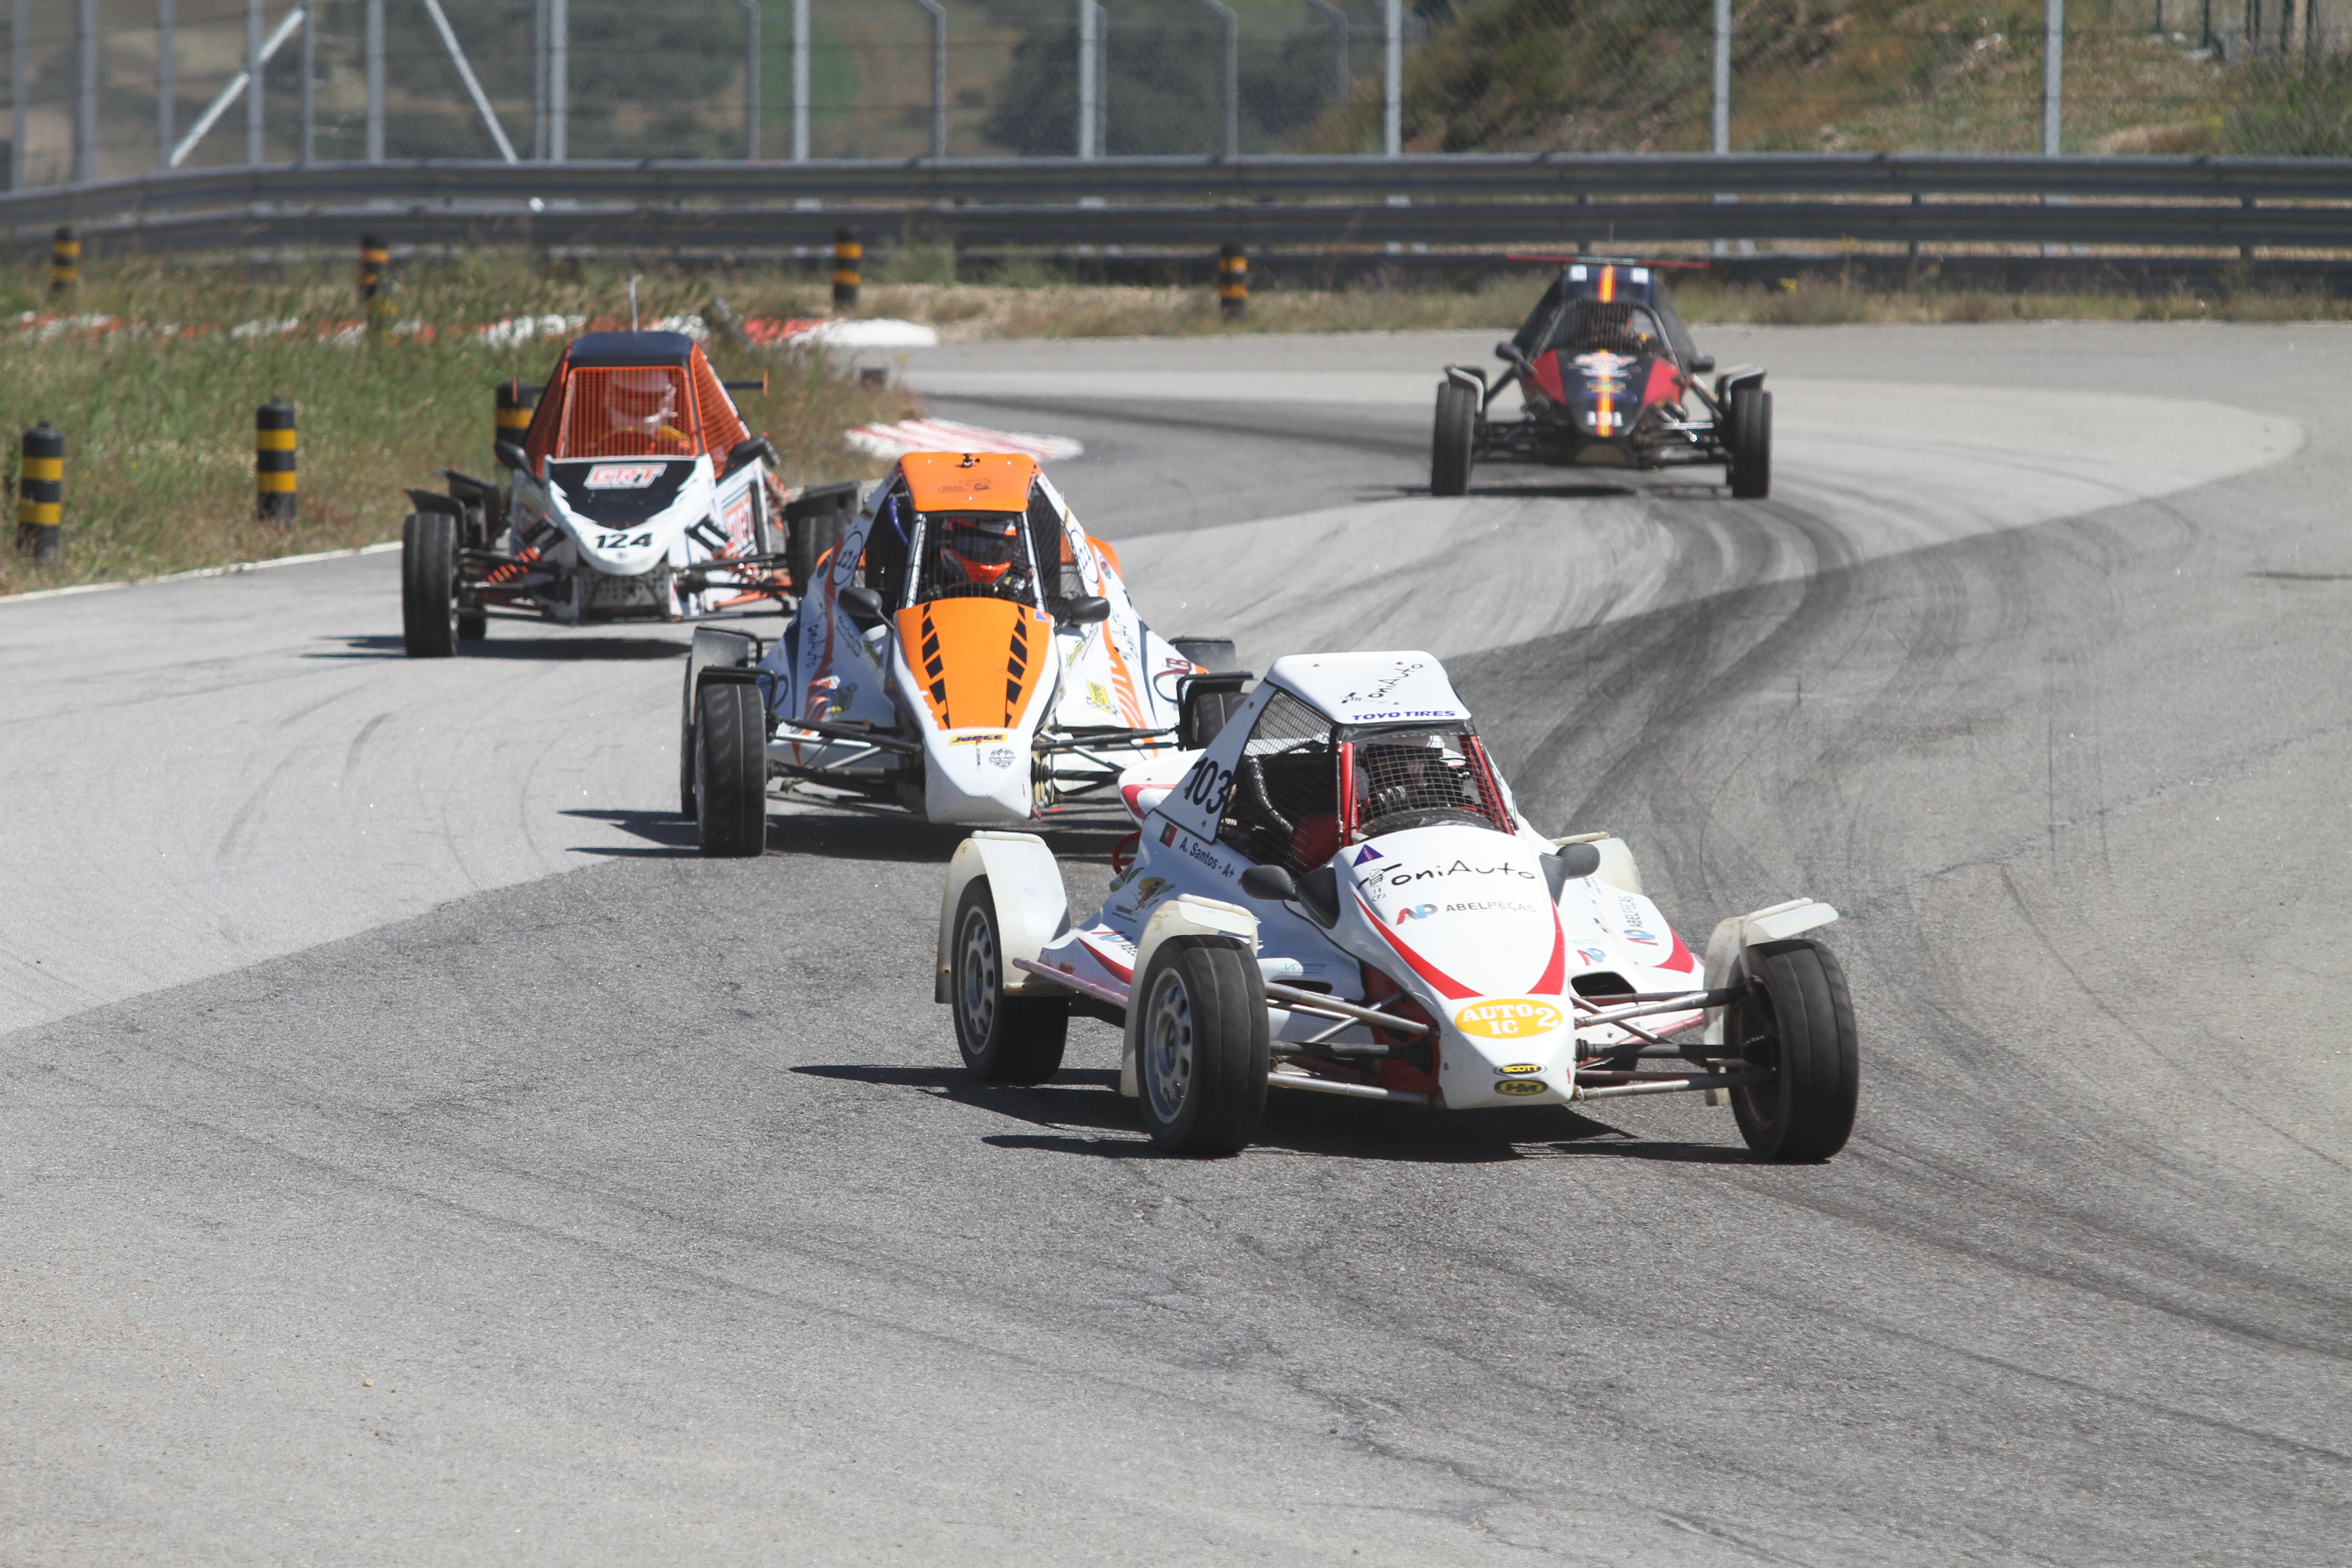 Montalegre superbuggy